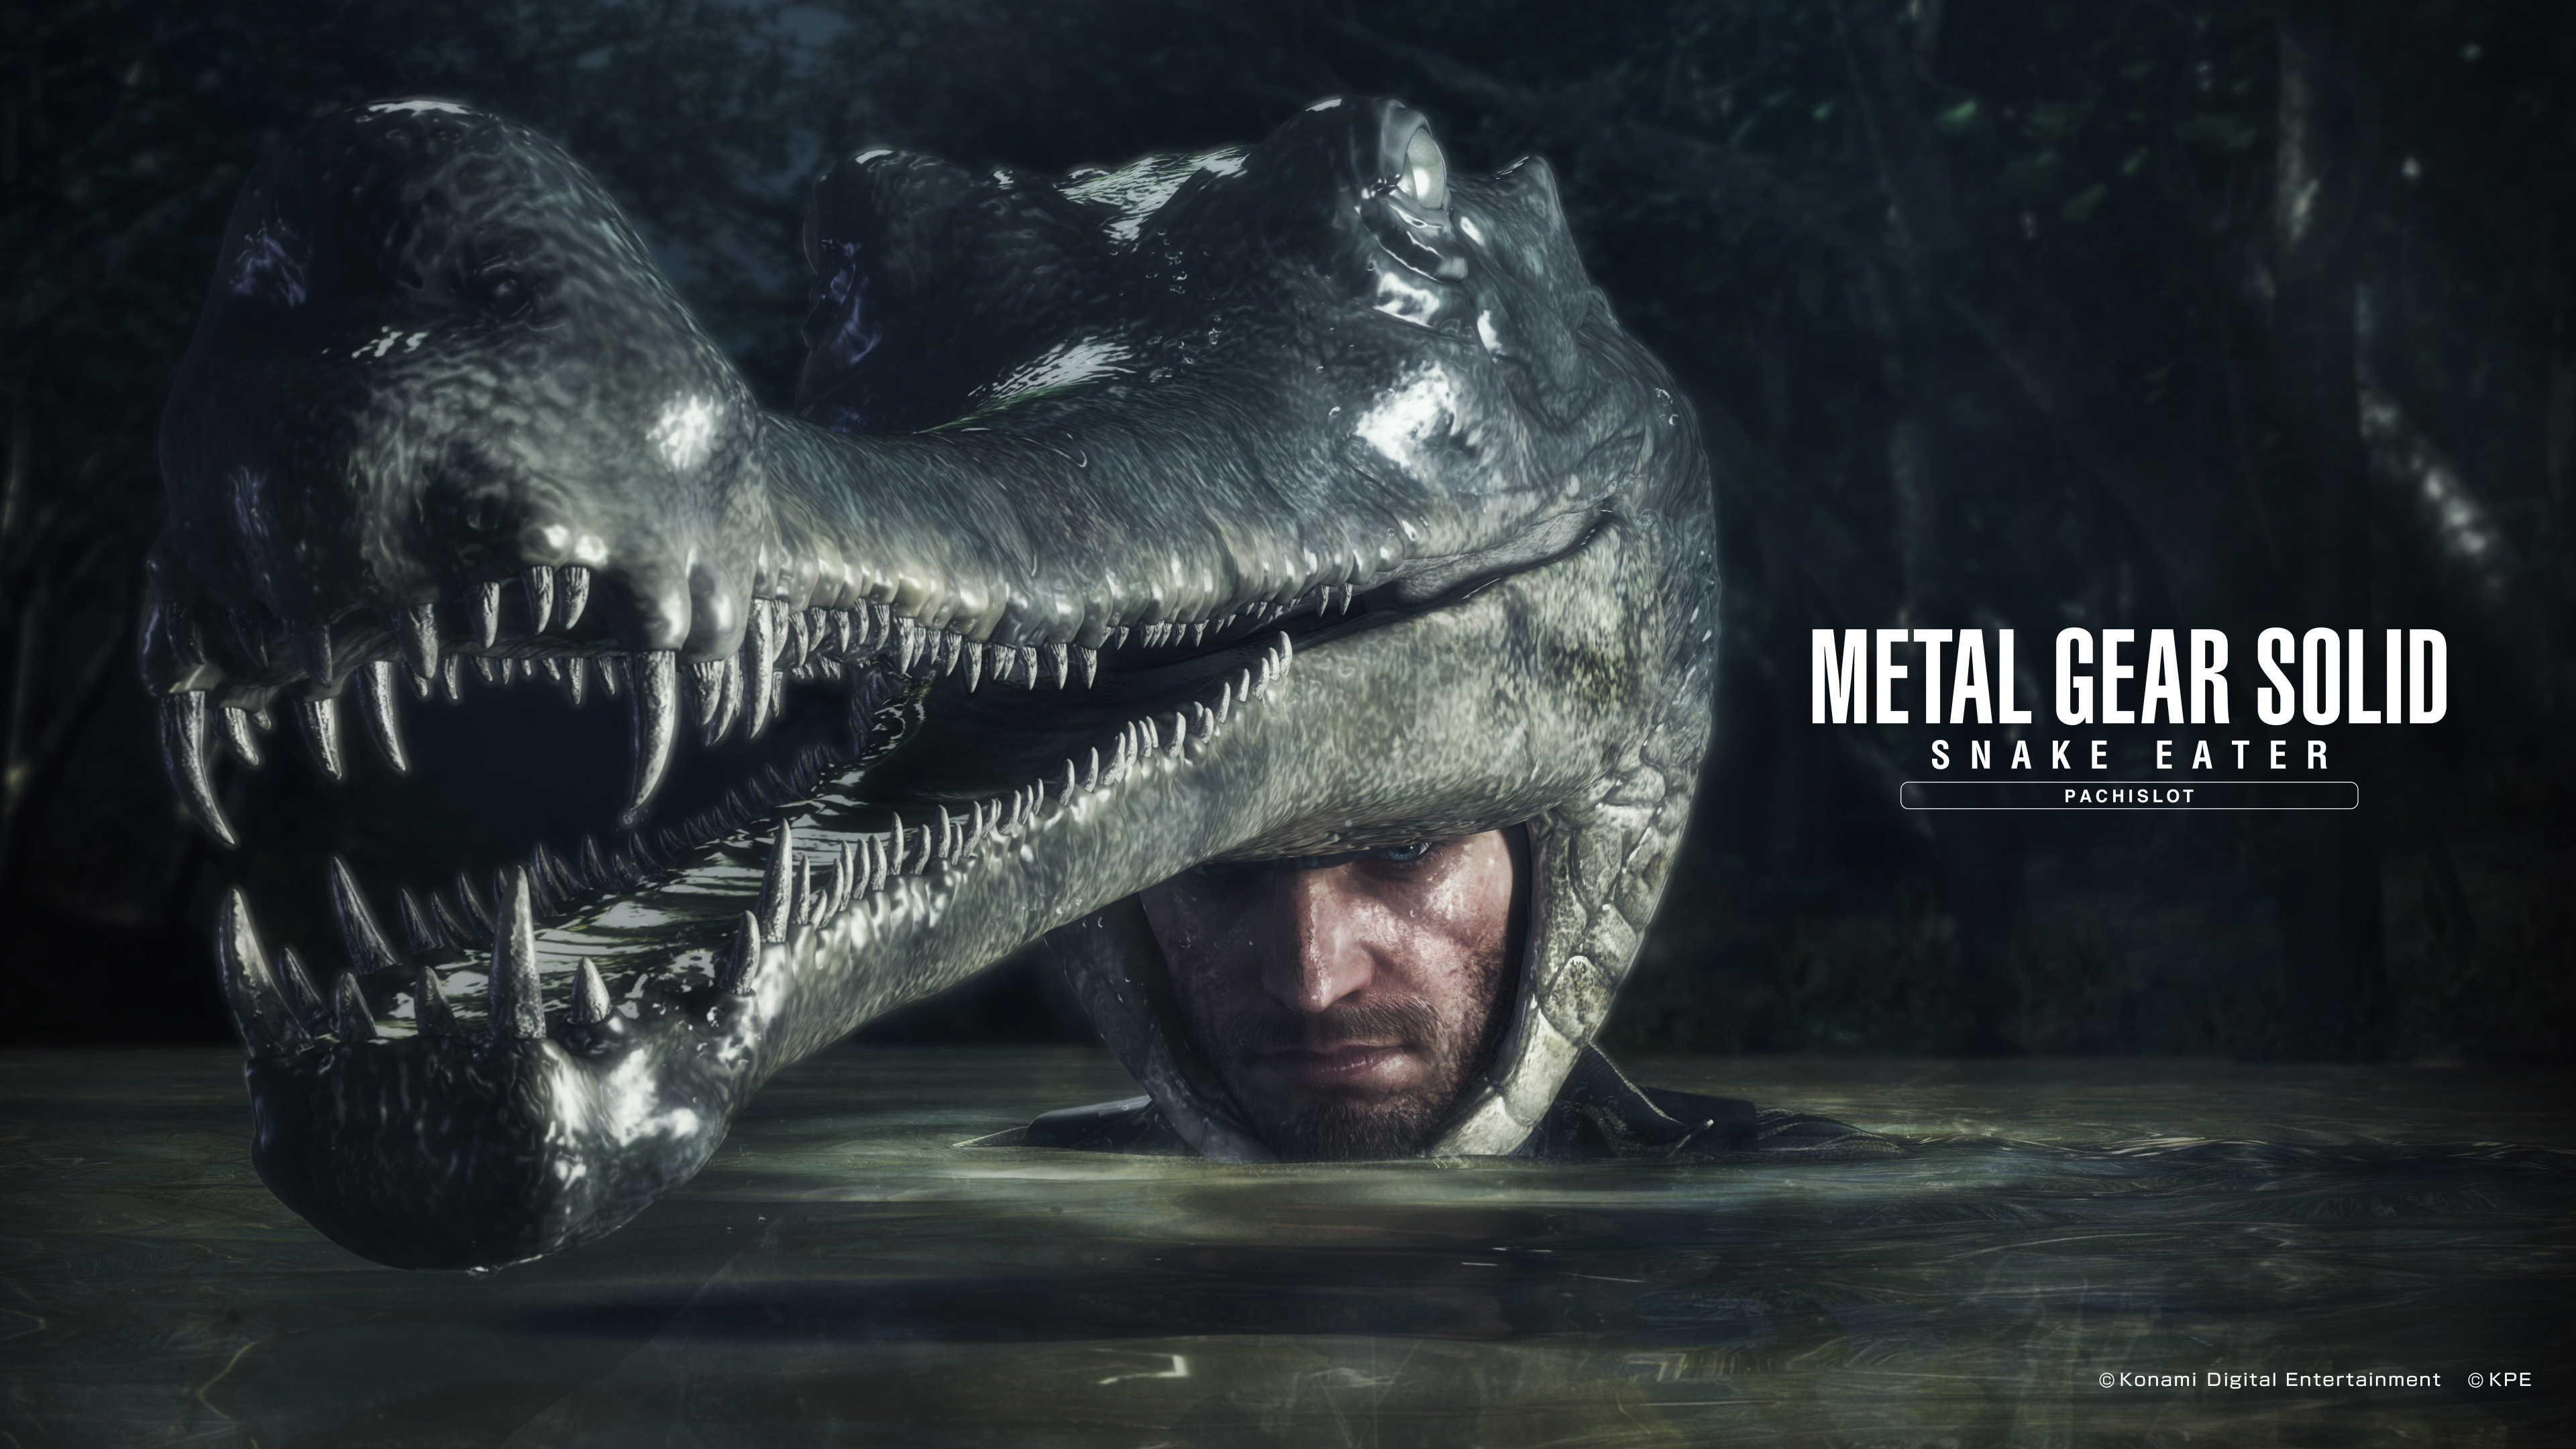 Official Metal Gear Solid Snake Eater Pachislot Wallpapers